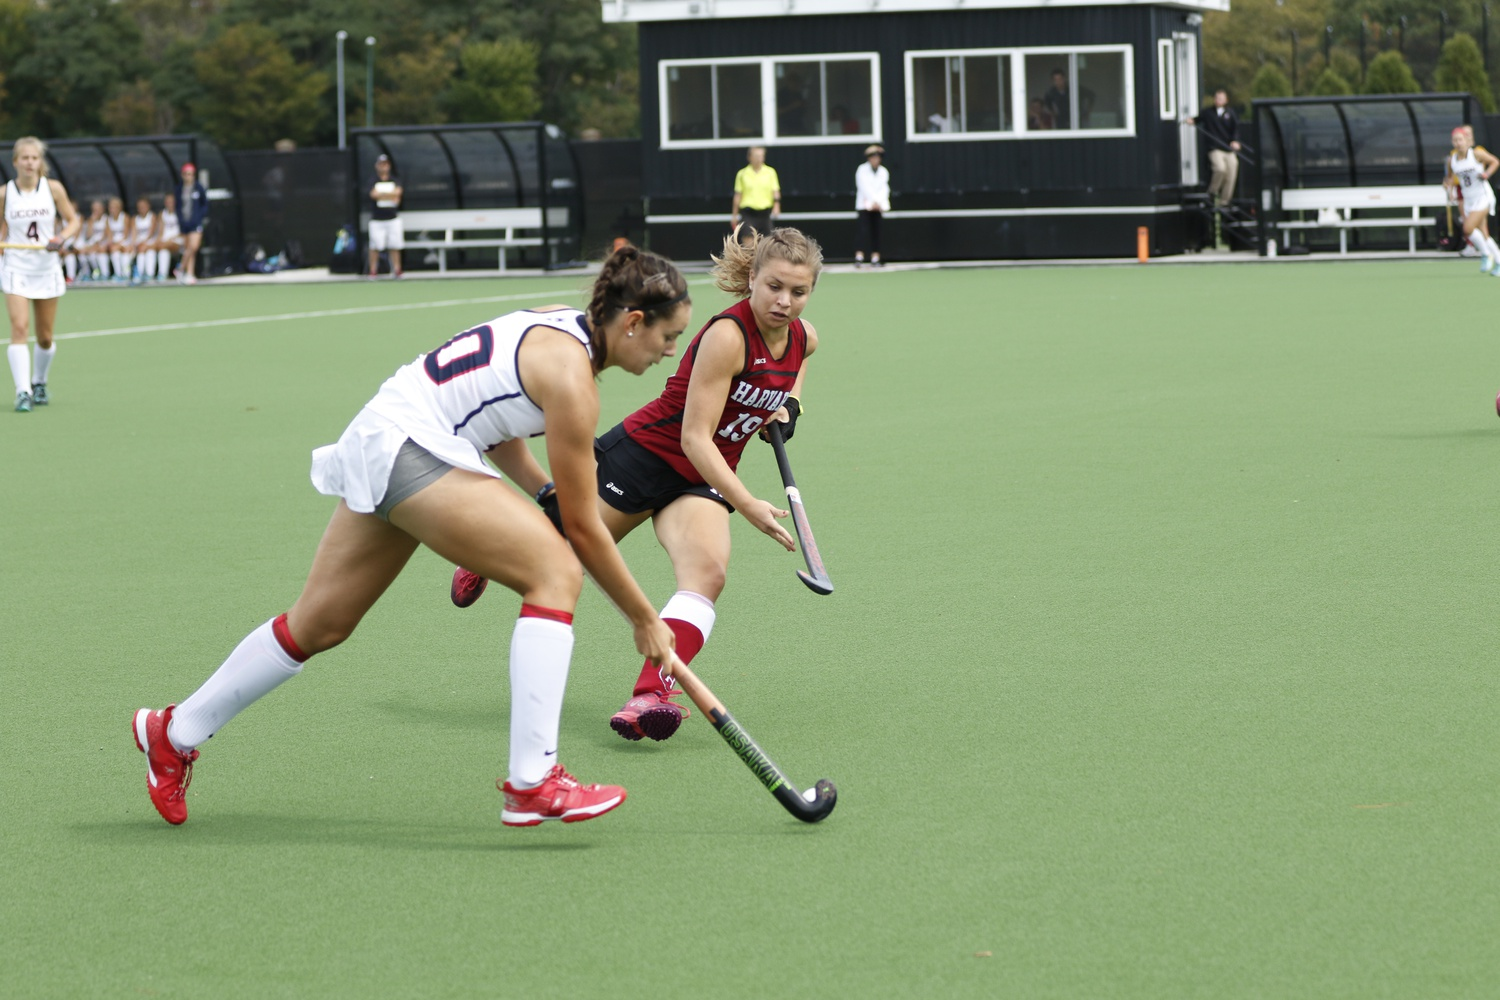 The field hockey team felt the loss of its leading scorer Kathleen Young this weekend, but still managed to overcome Cornell in overtime.